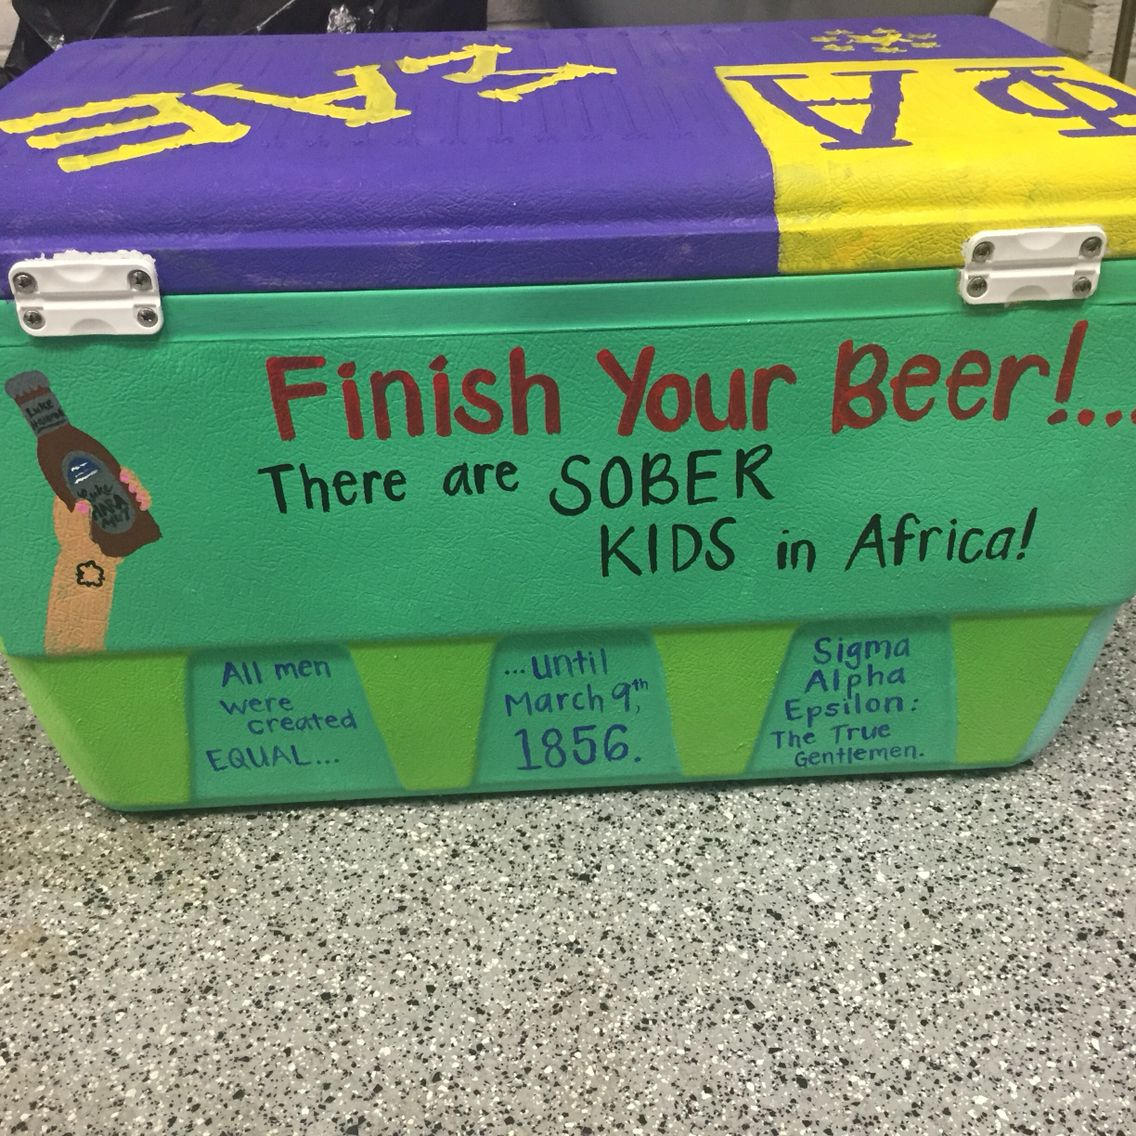 Finish your beer there are sober kids in Africa cooler side for SAE perfect for mountain weekend or